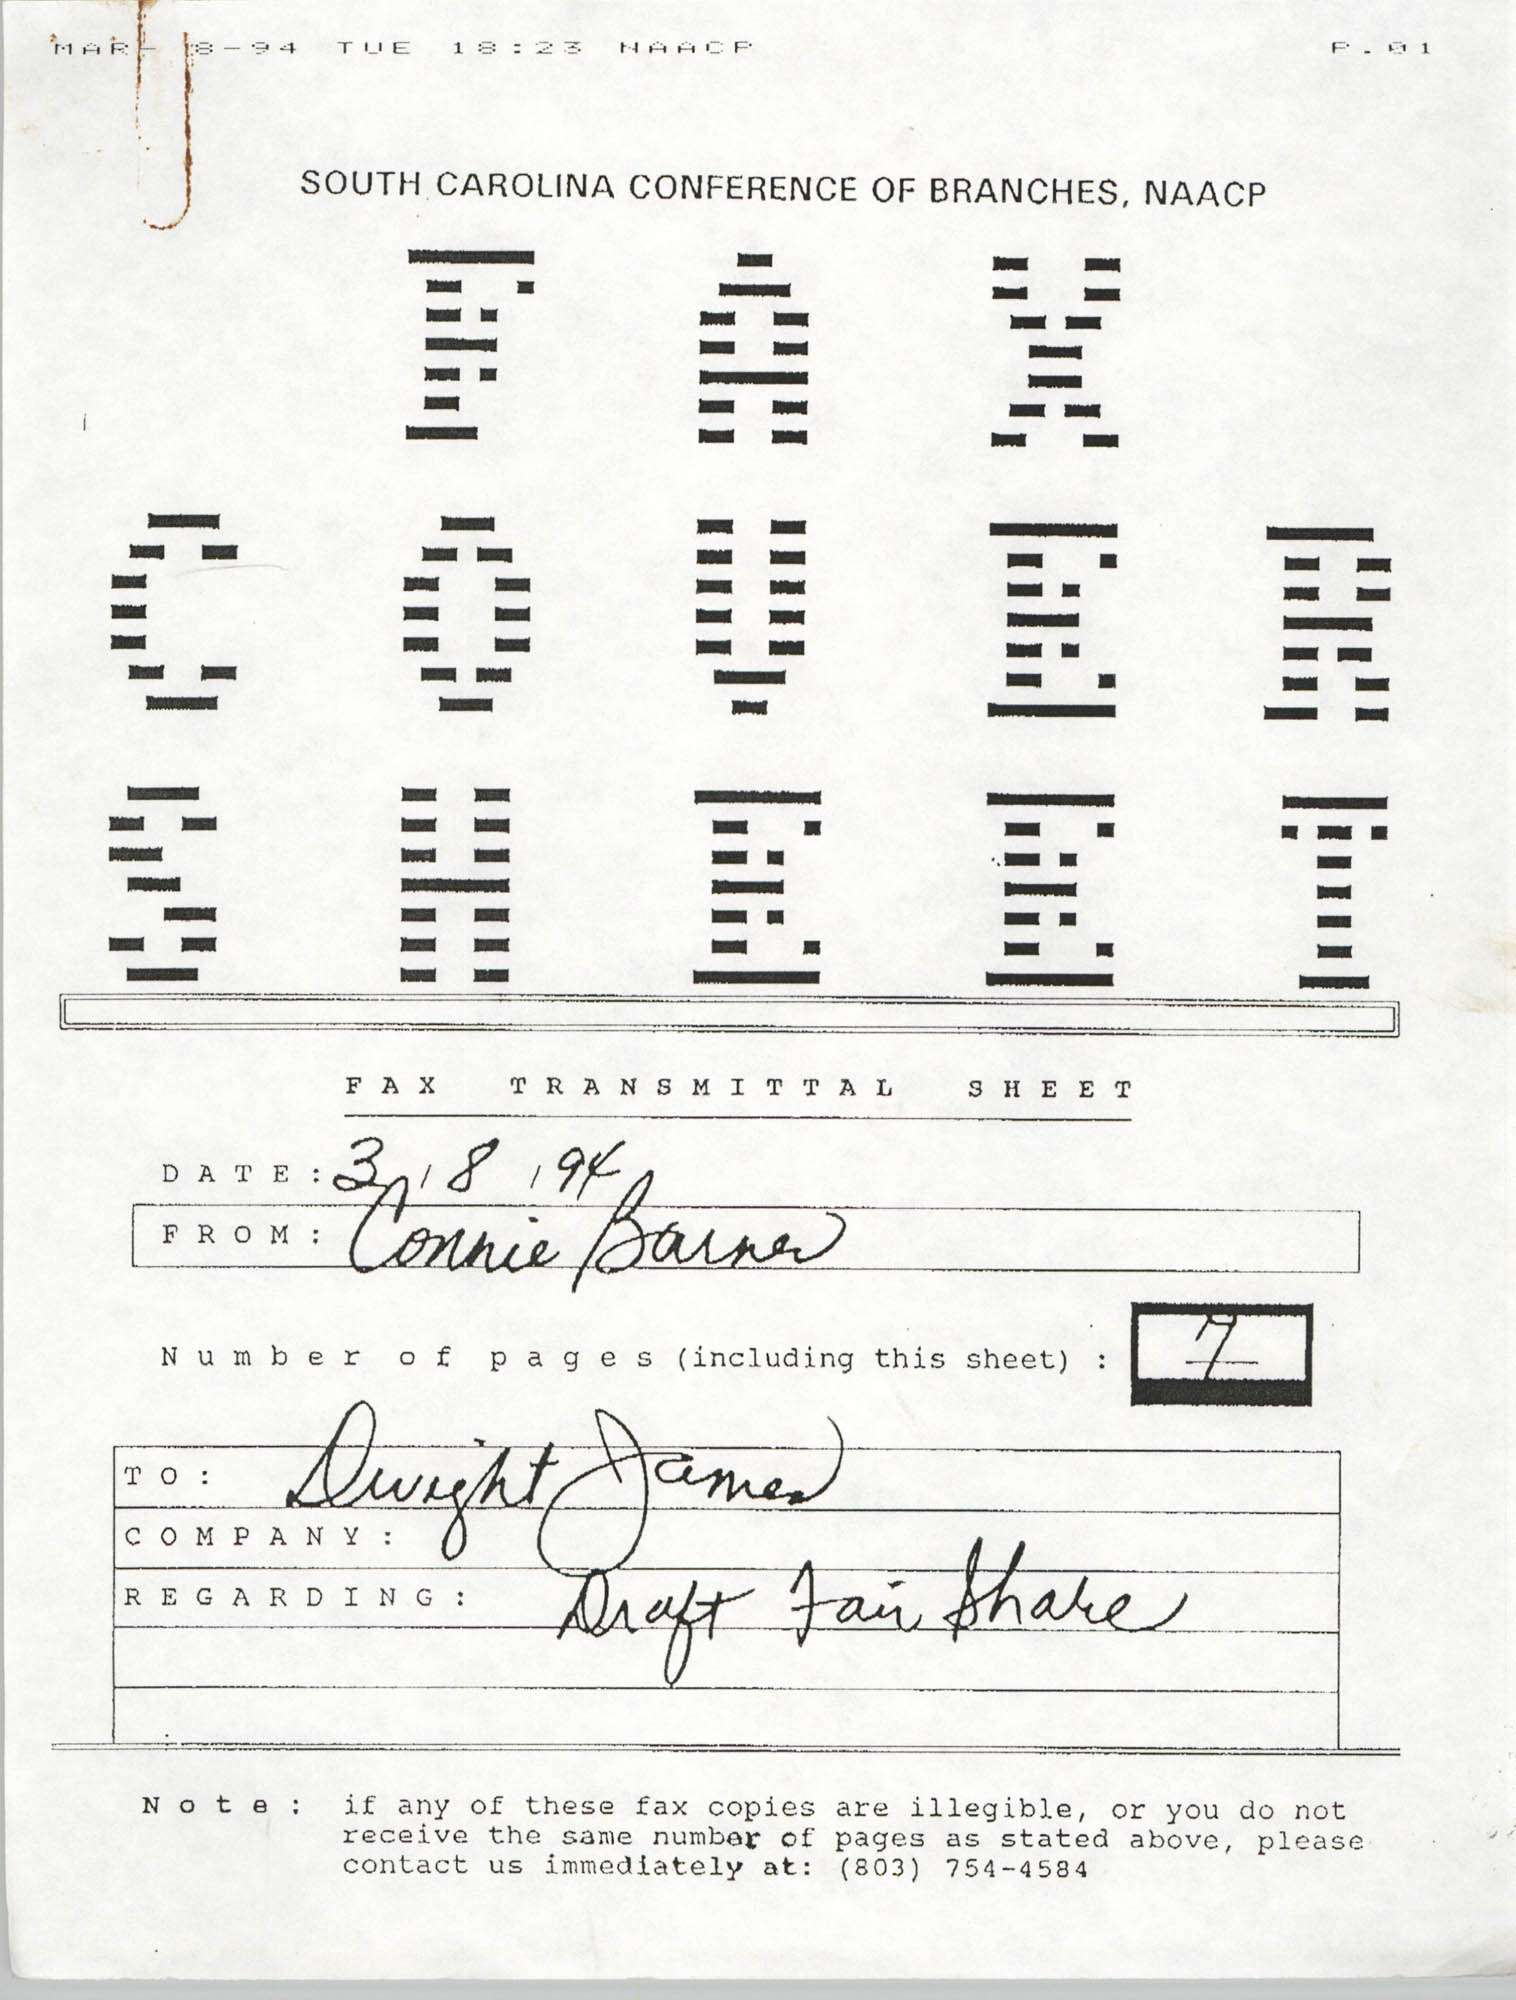 Fax from Connie Barner to Dwight James, March 8, 1994